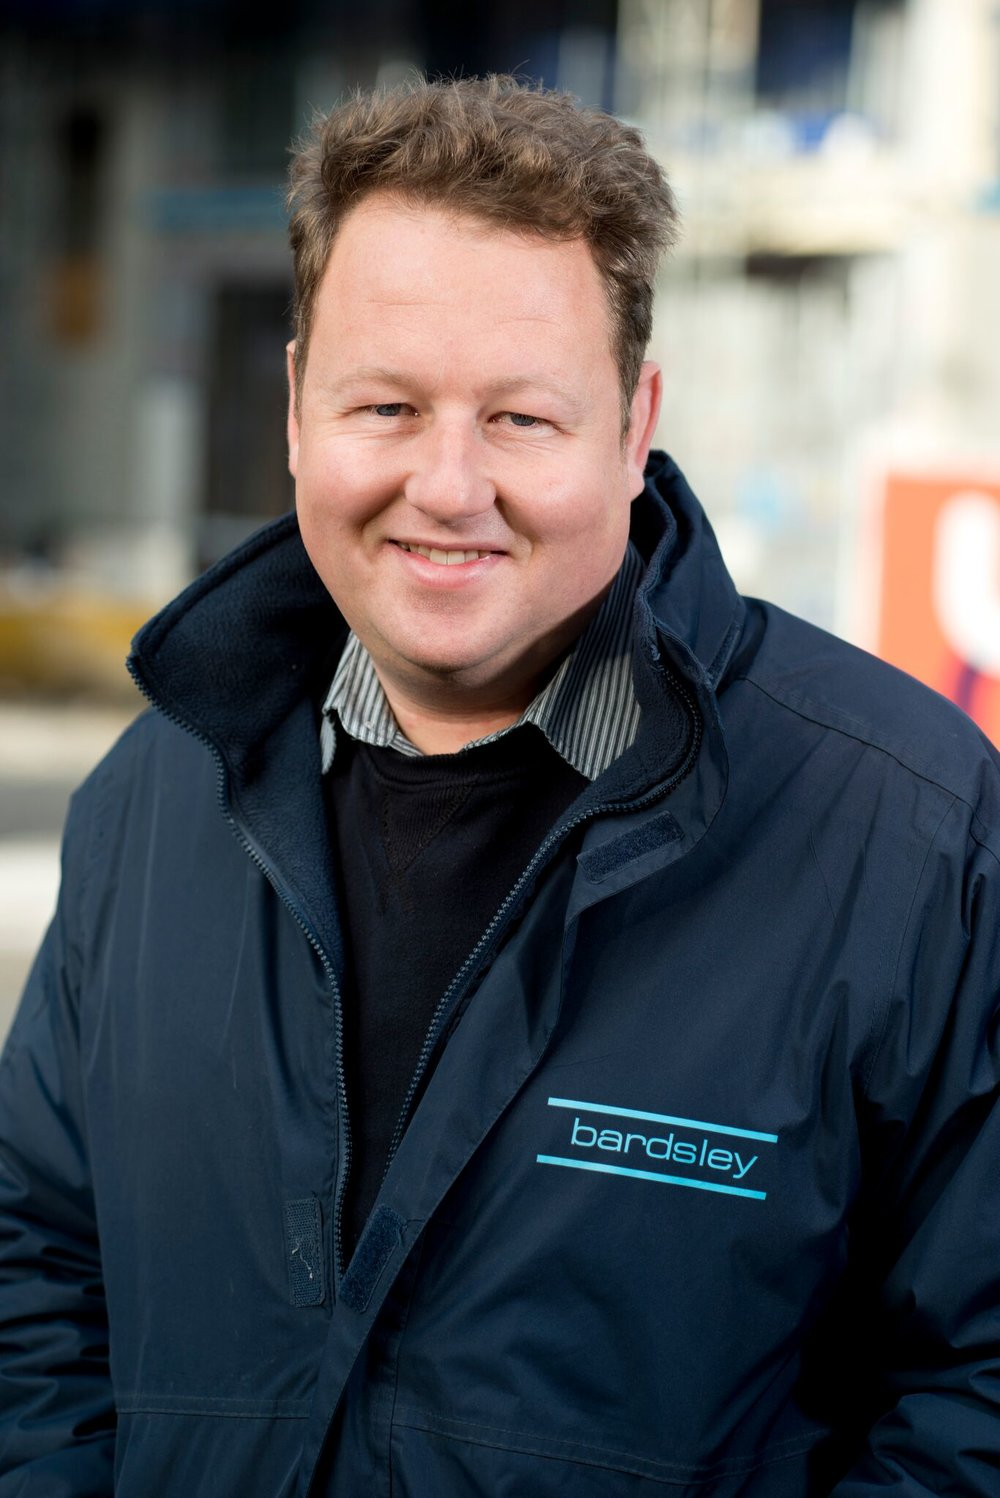 Nick Eagleton Site Manager